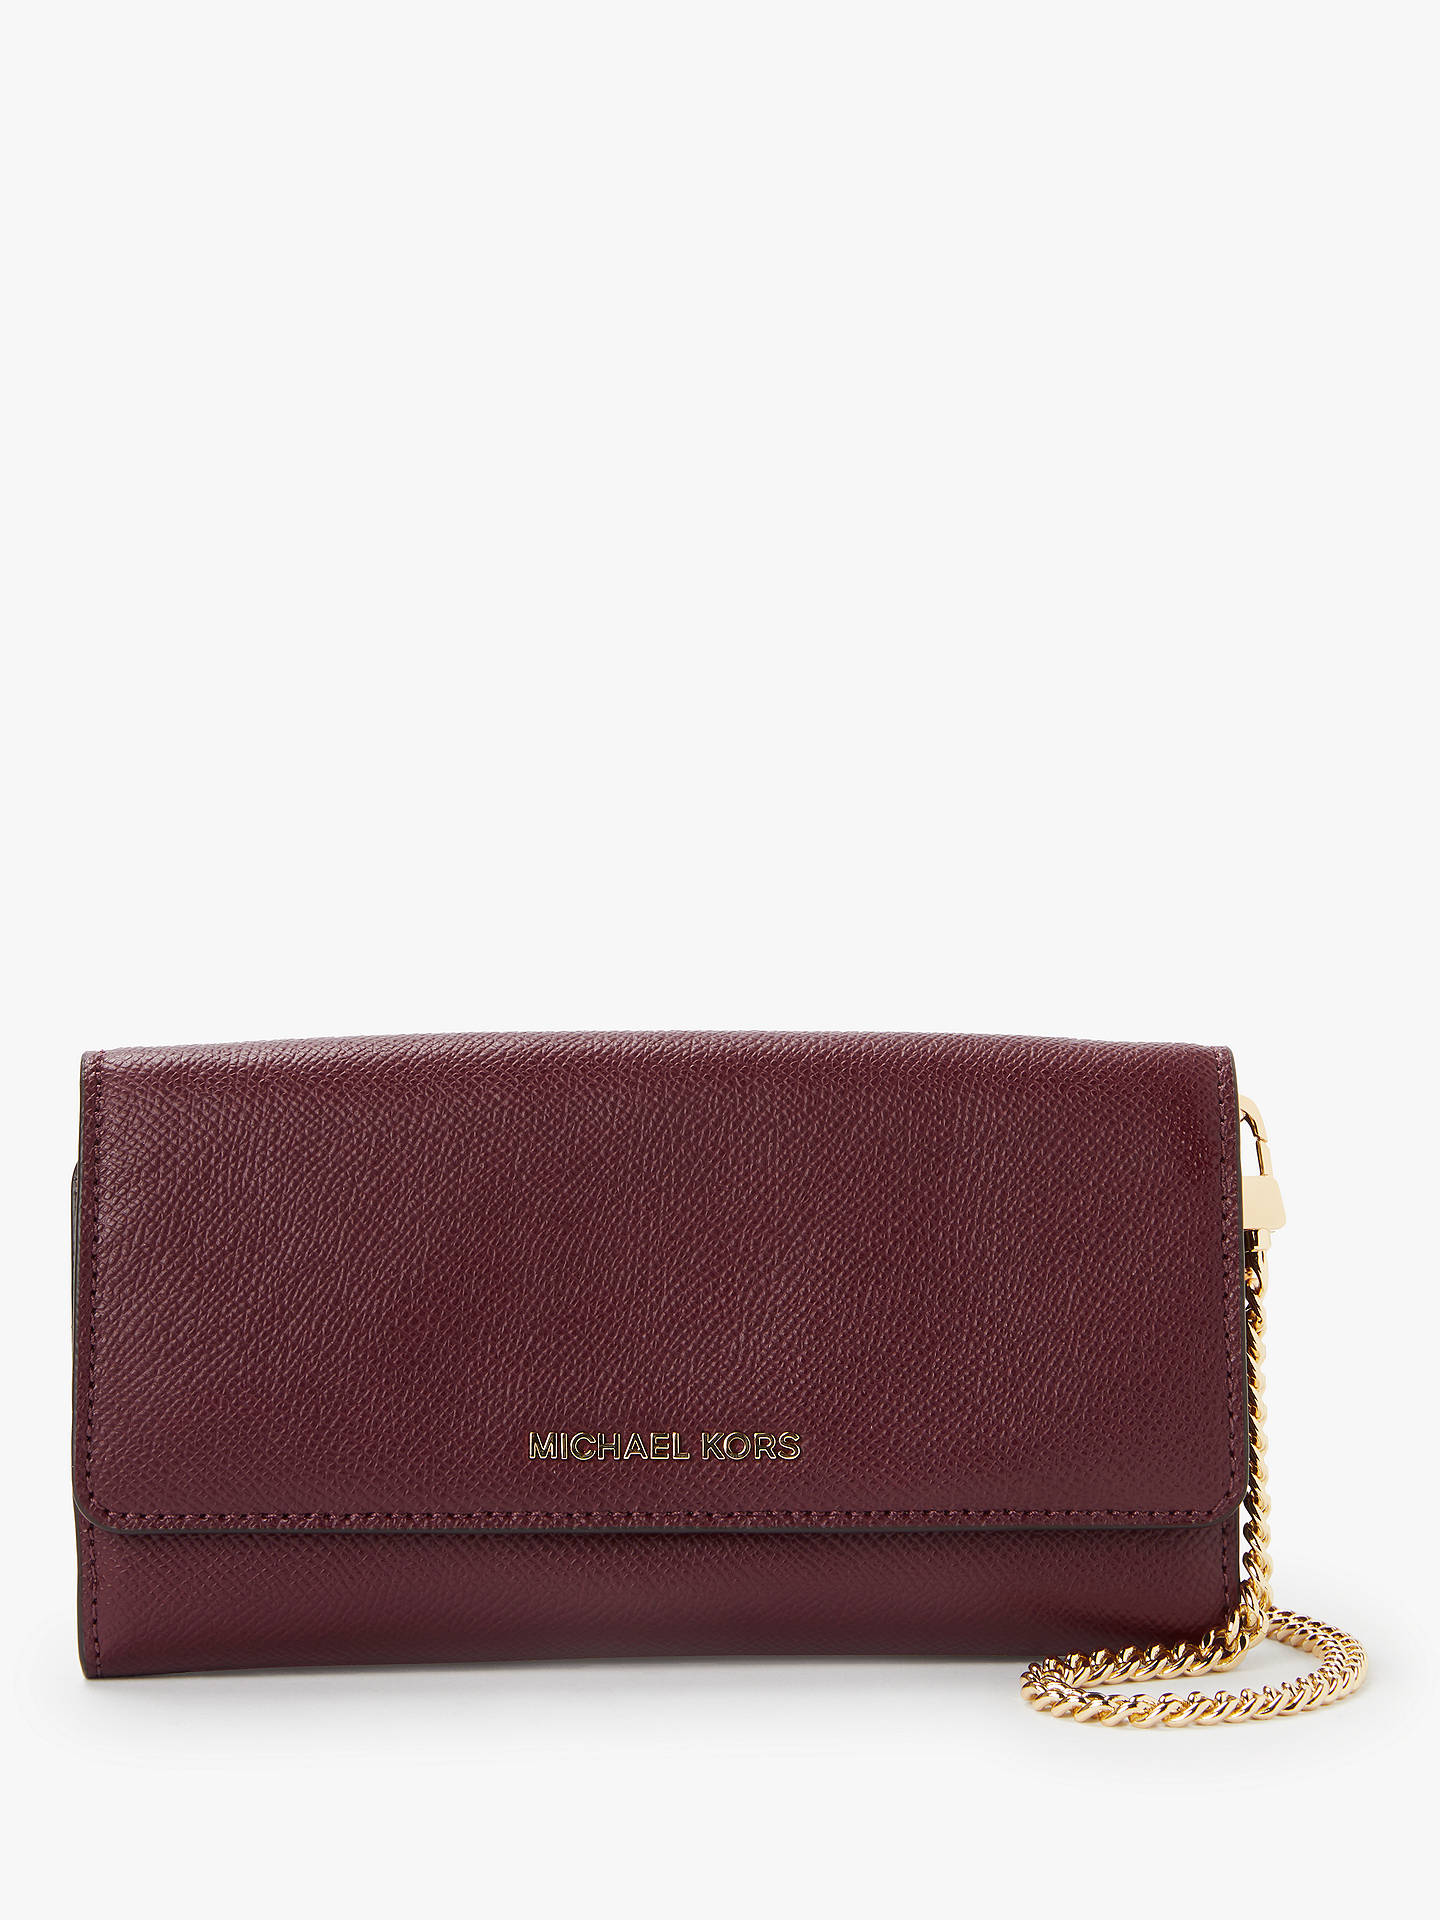 7bd022be6327dc Buy MICHAEL Michael Kors Crossbodies Leather Wallet On A Chain Clutch Bag,  Oxblood Online at ...